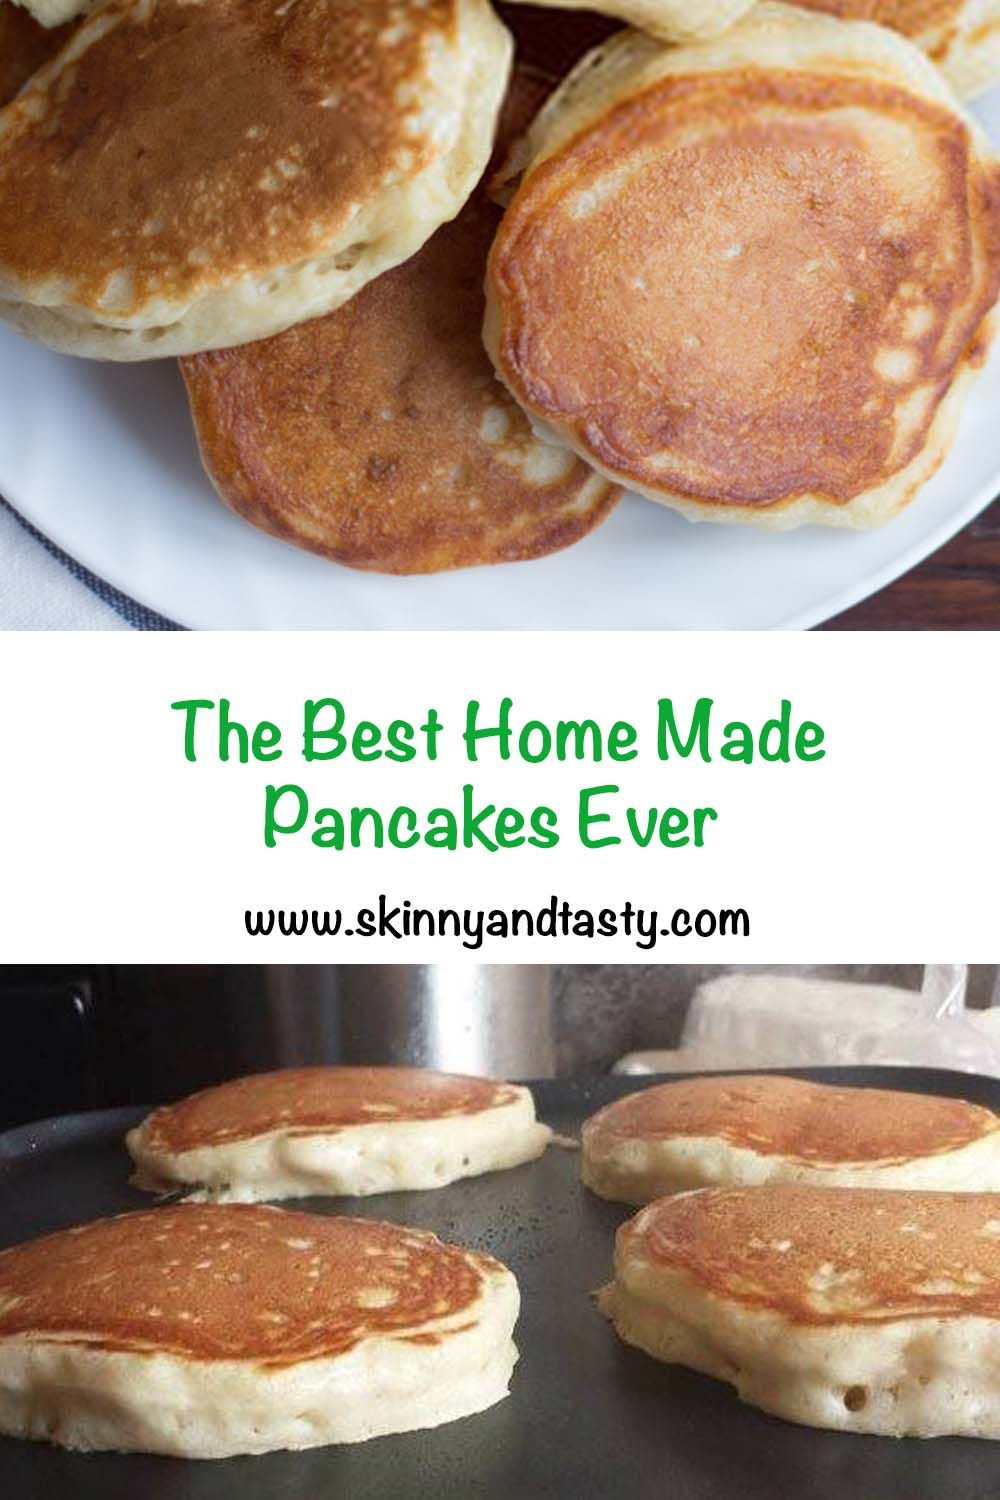 The Best Homemade Pancakes